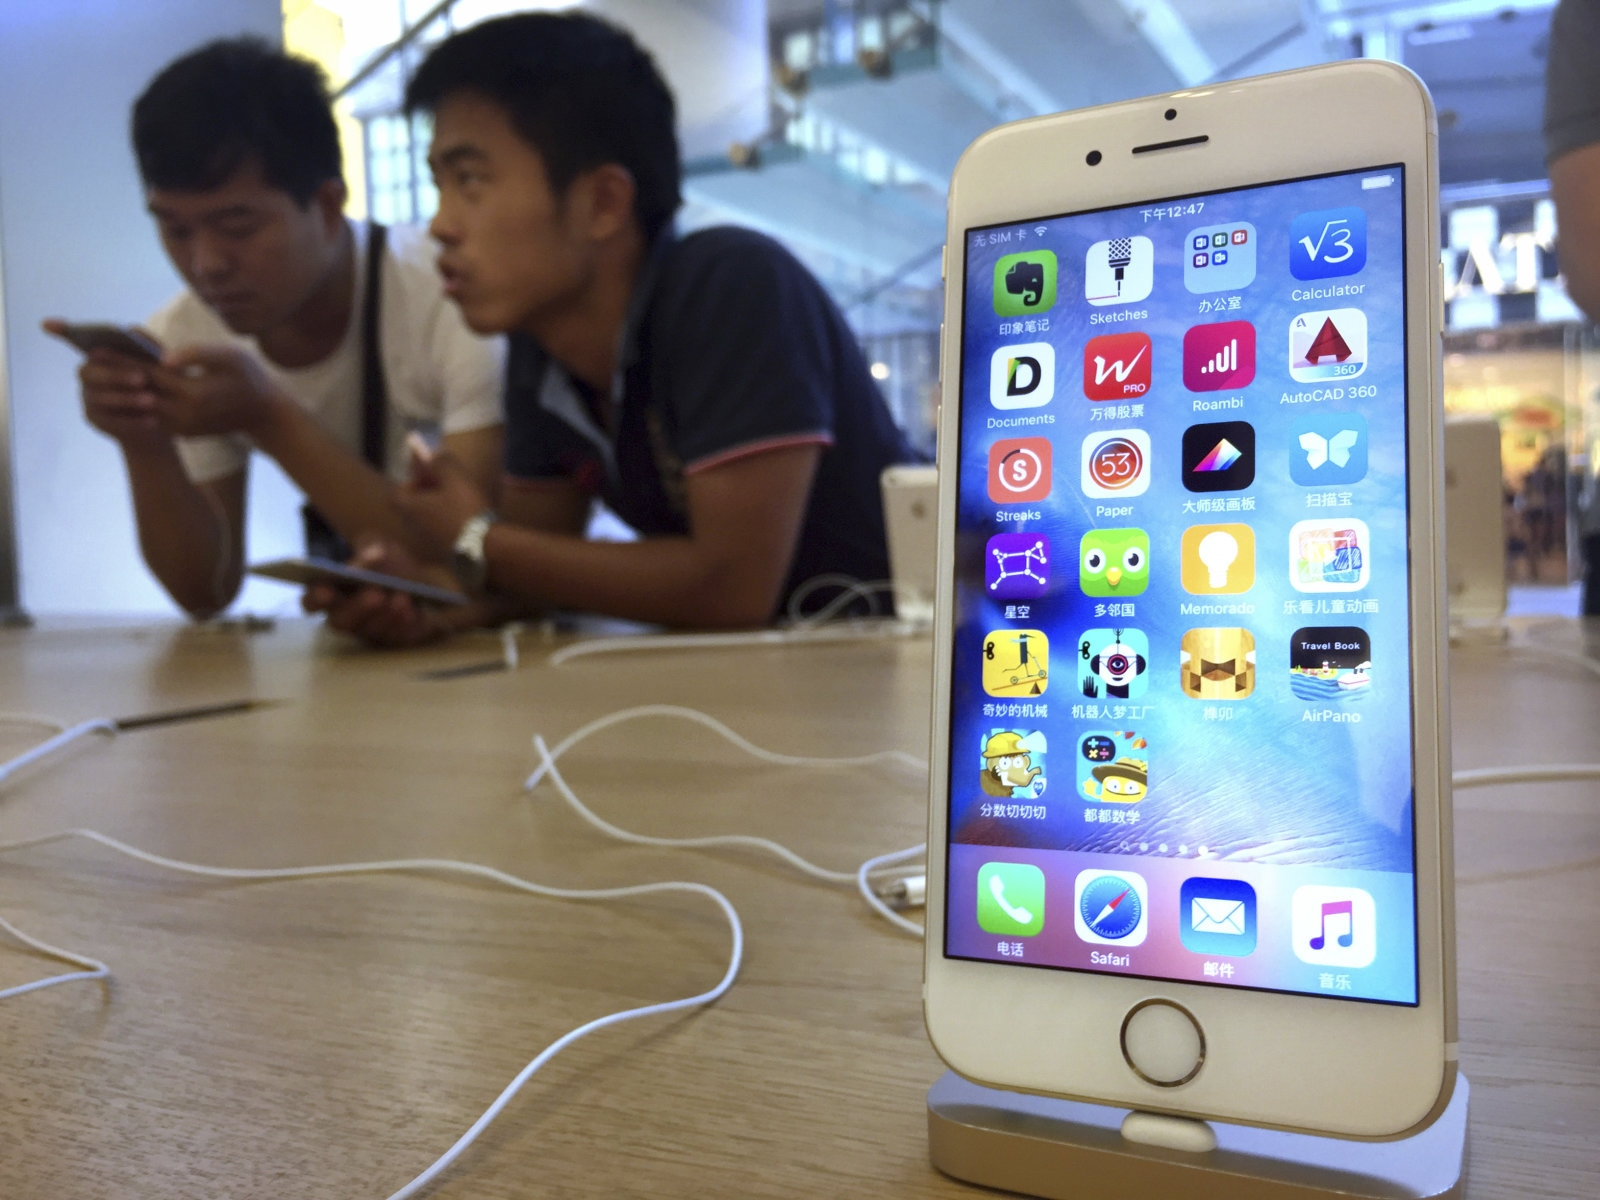 Apple will update iPhones in China due to Qualcomm's patent claim | DeviceDaily.com